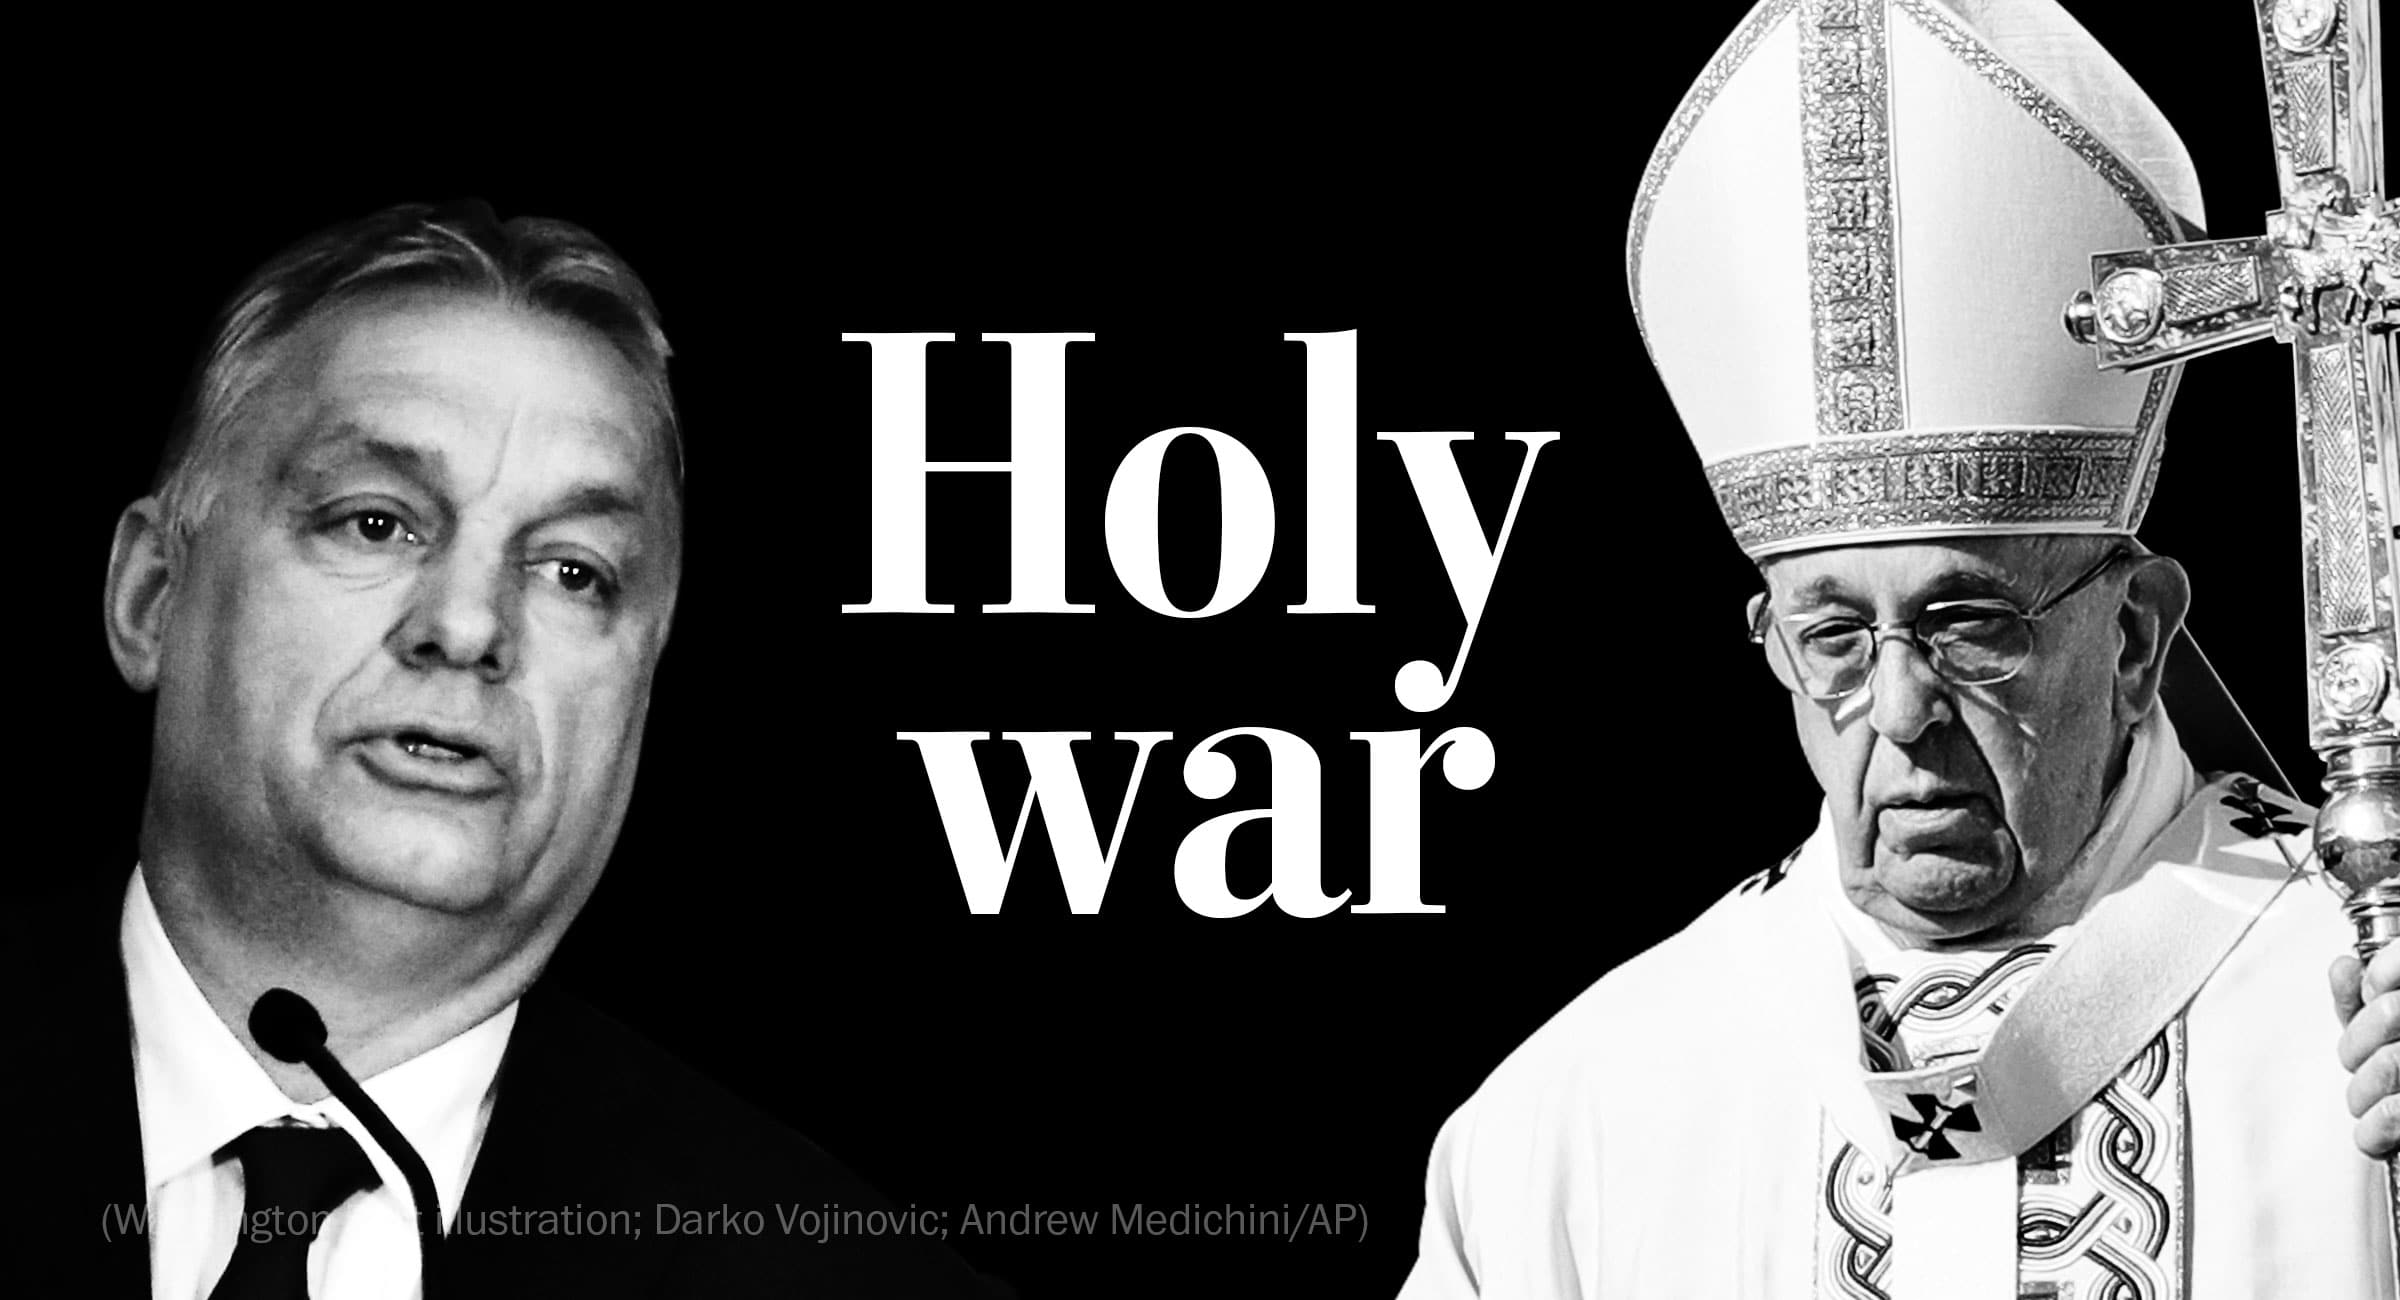 Hungary's leader says he's defending Christian Europe. The pope disagrees. - The Washington Post